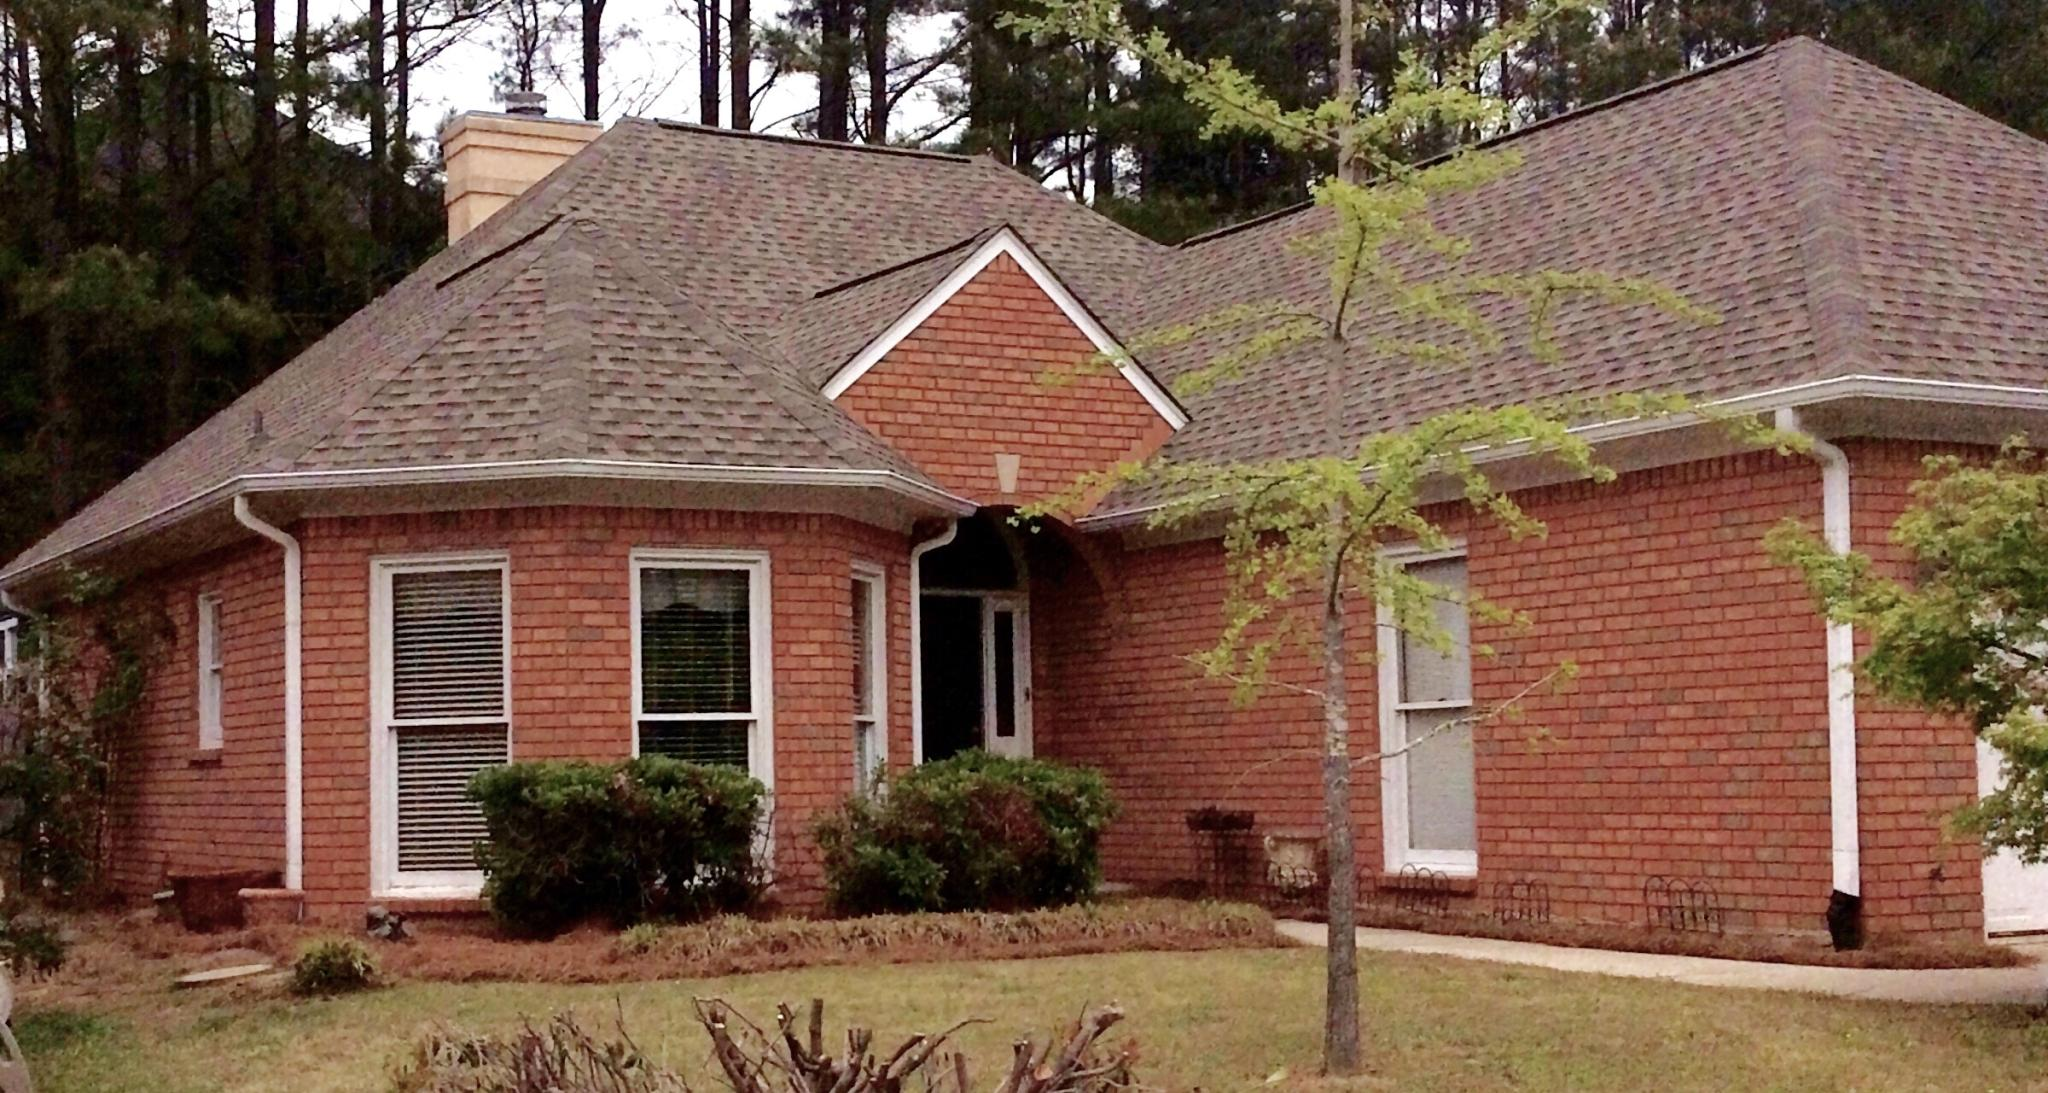 141 Southlake Ln, Hoover, AL 35244 - Estimate and Home Details | Trulia